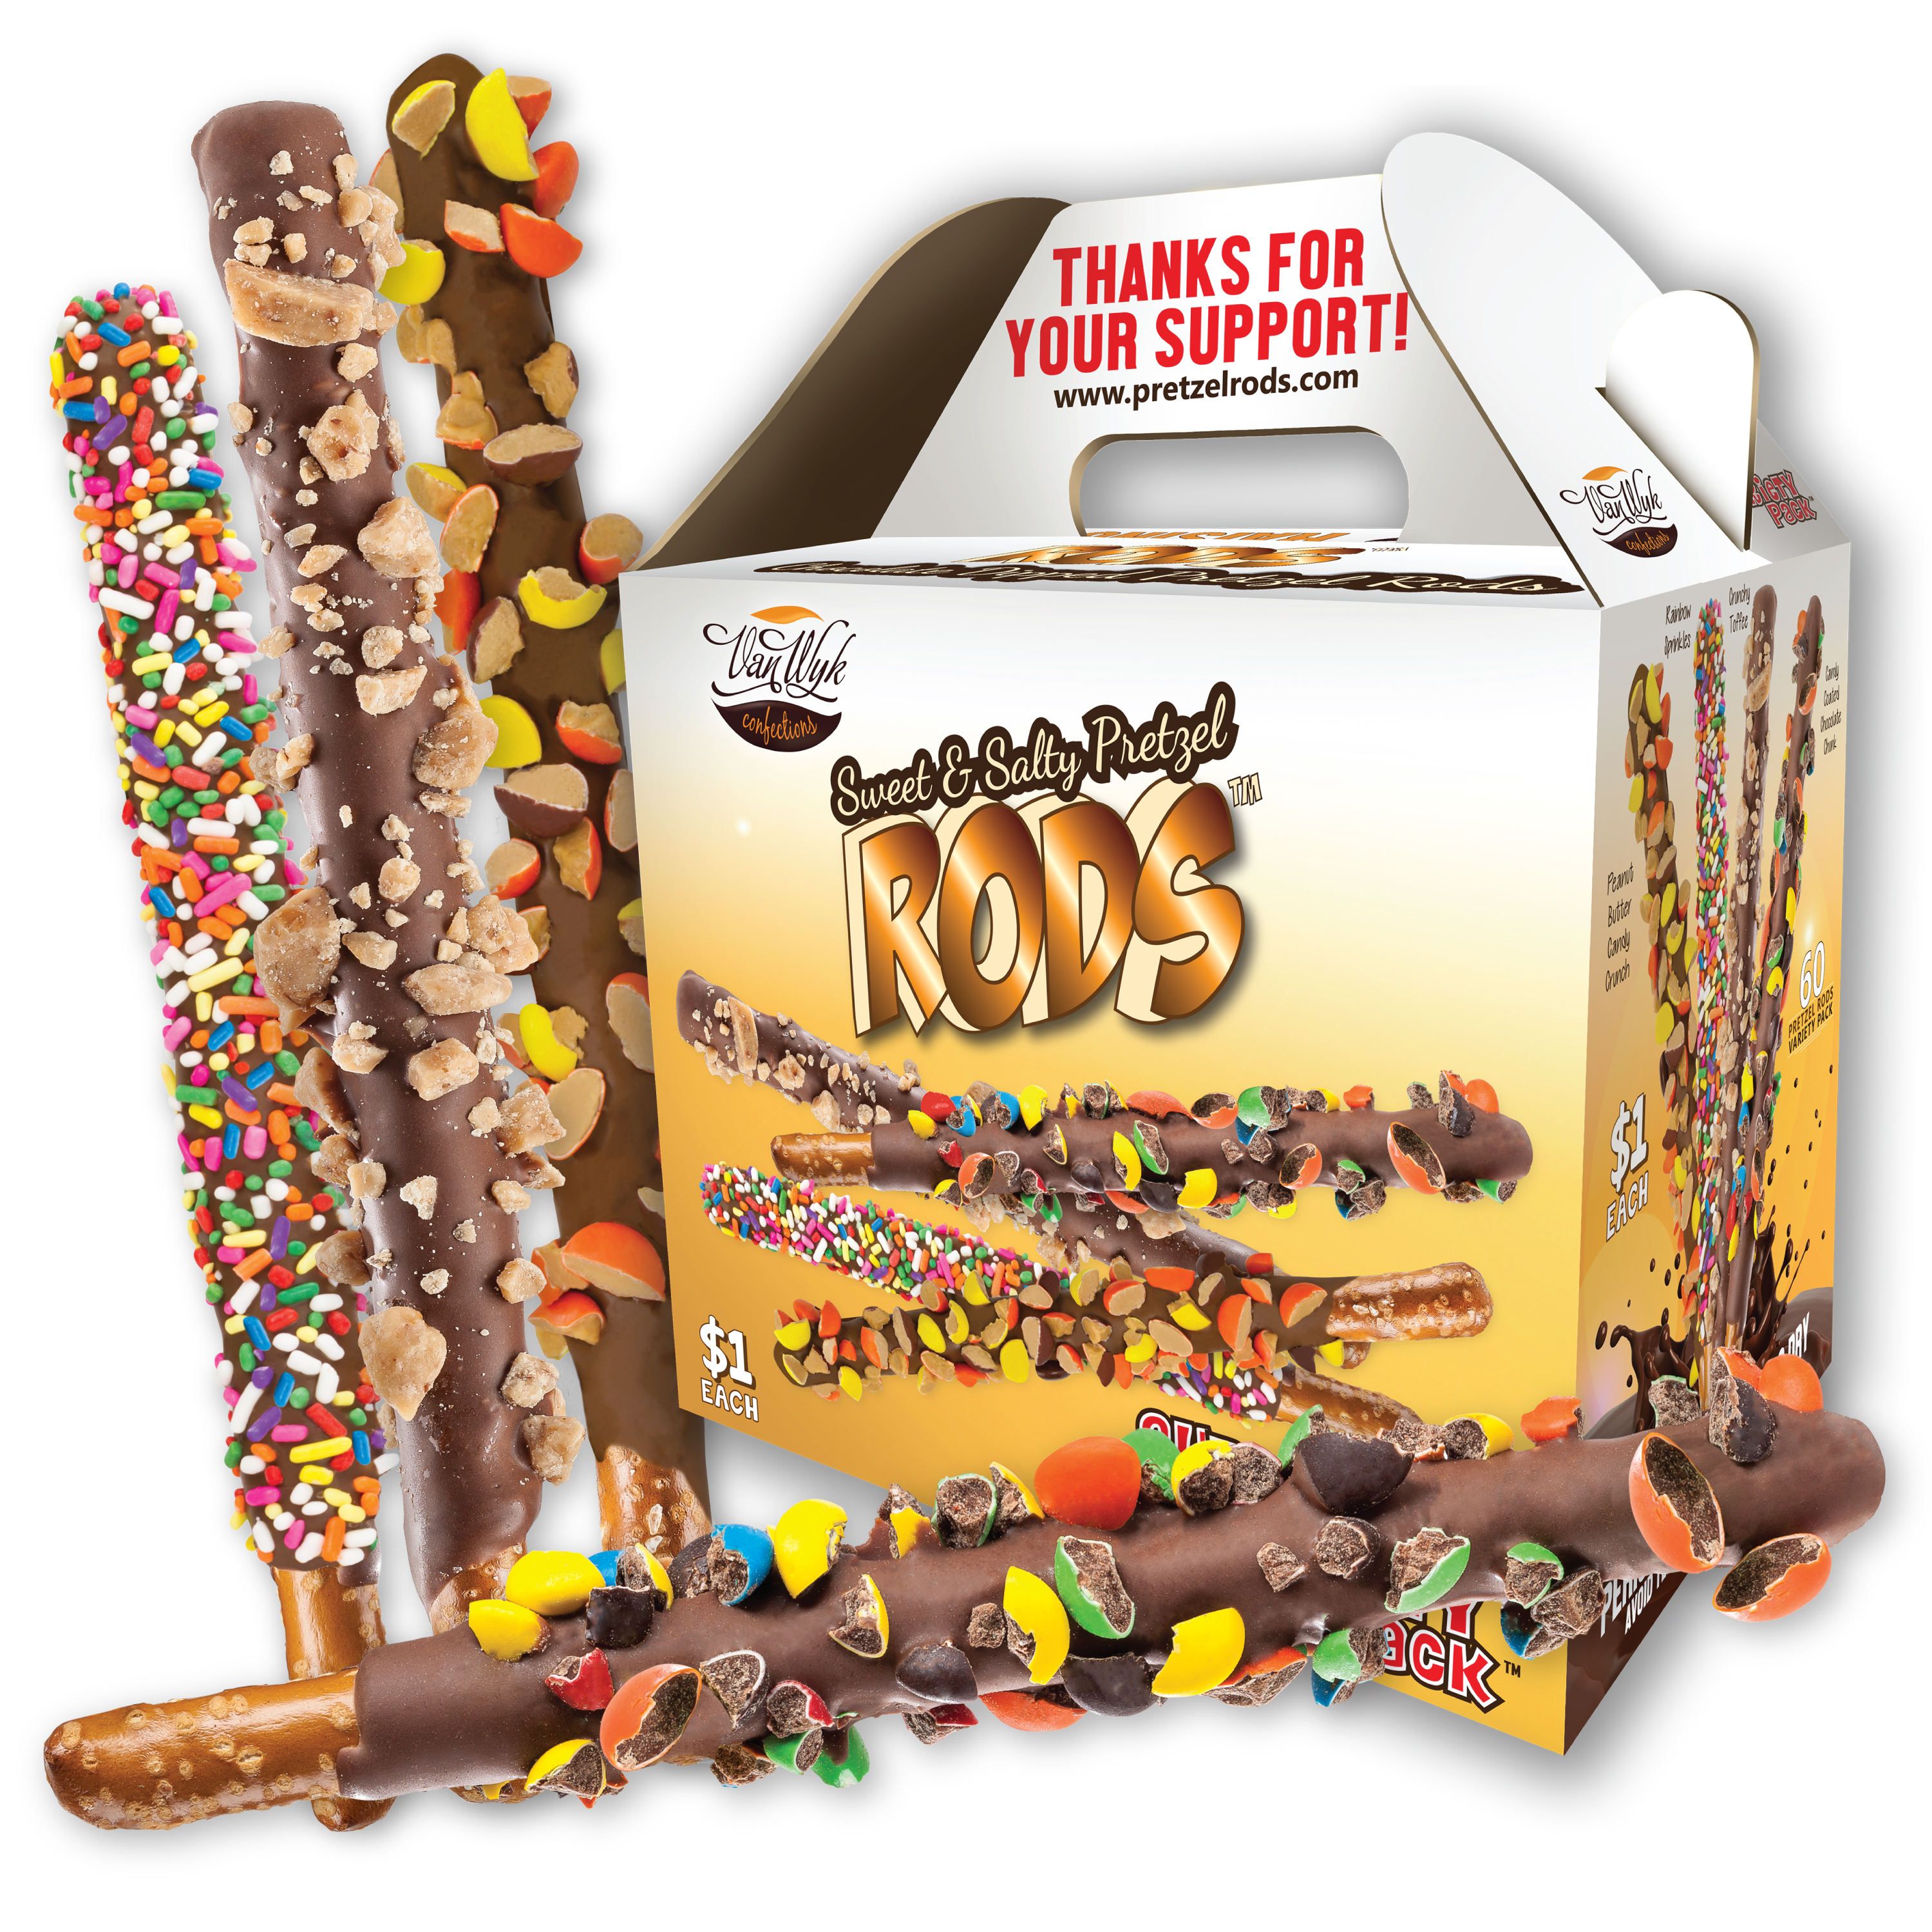 Pretzel Rods fundraising